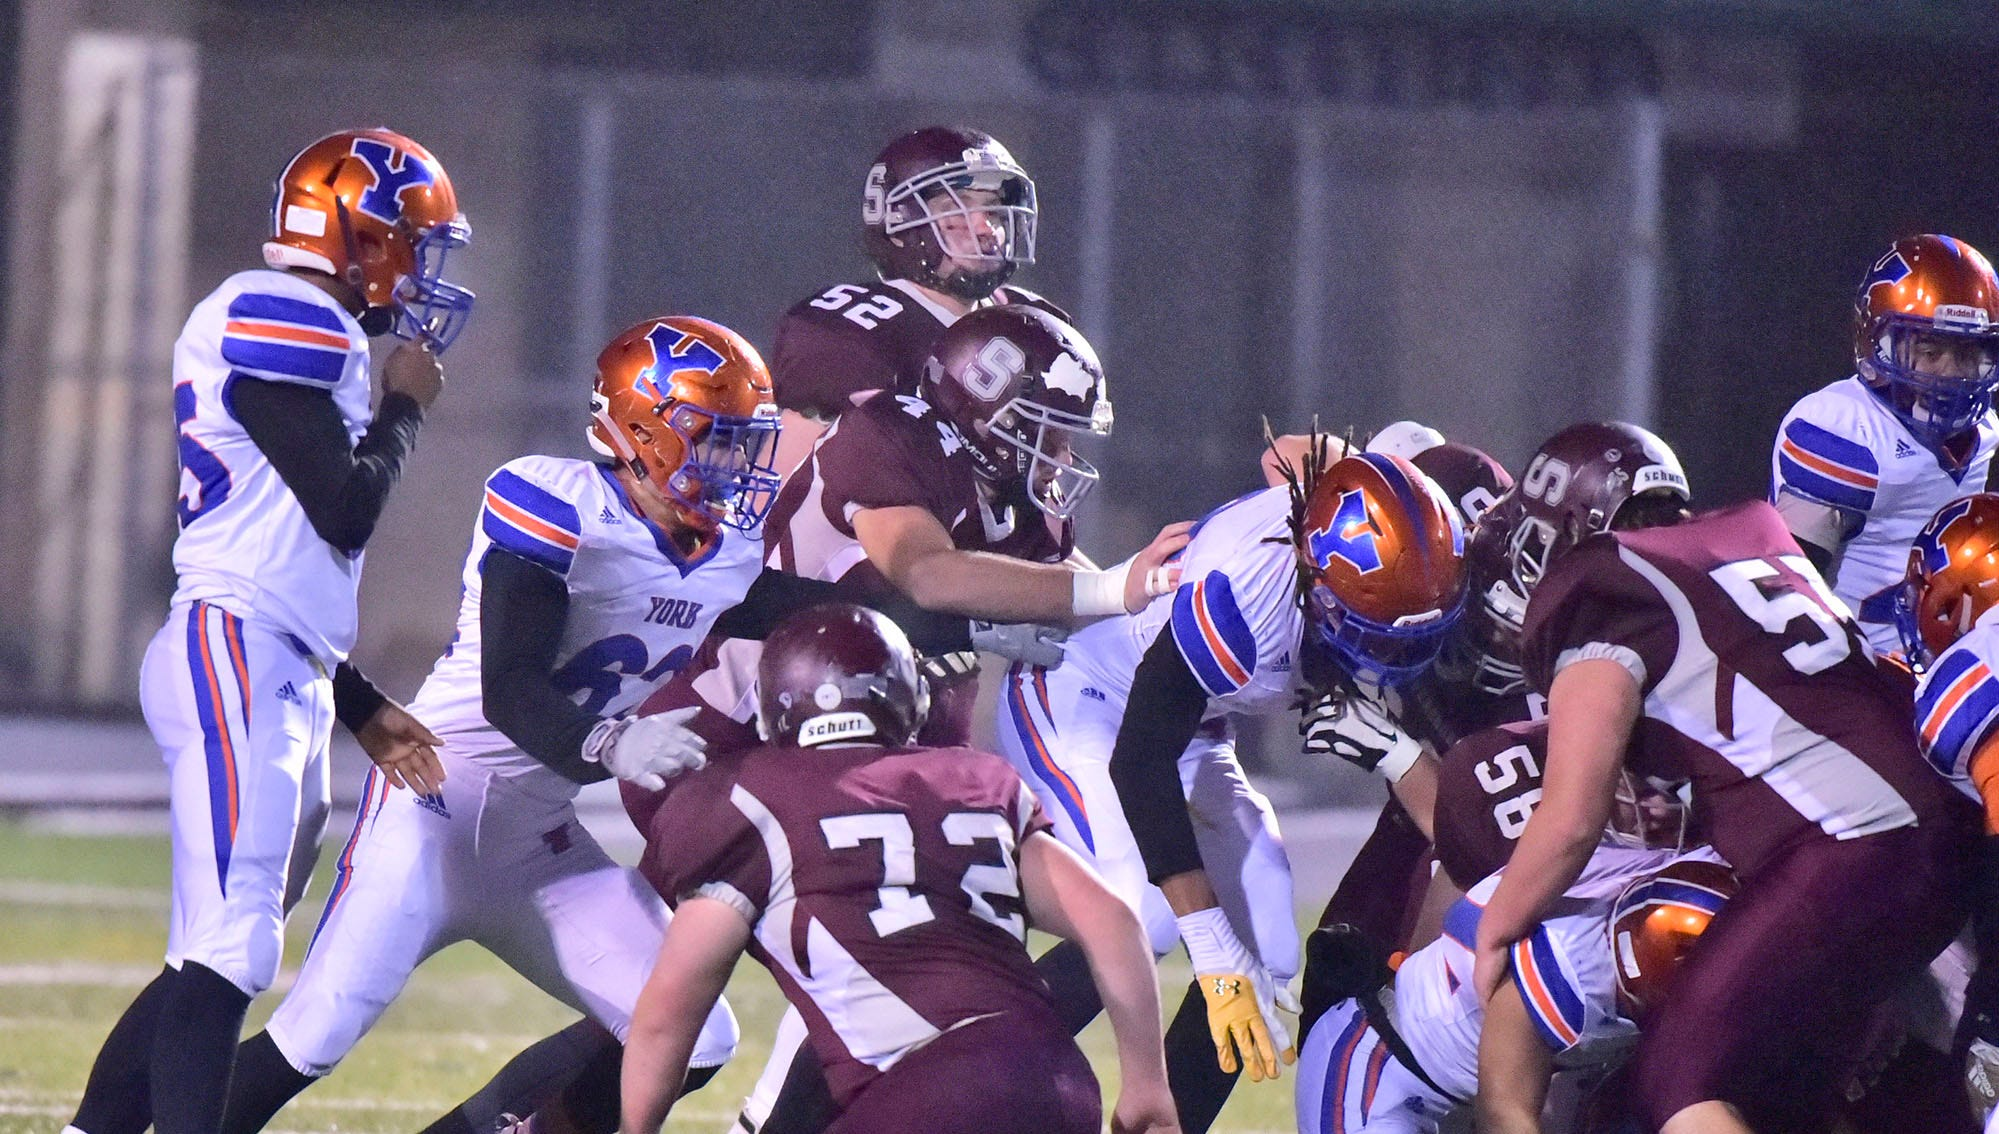 York High defeated Shippensburg 22-6  in the the quarterfinals of PIAA 5A District 3 football playoffs on Friday, Nov. 9, 2018 at Trojan Stadium.